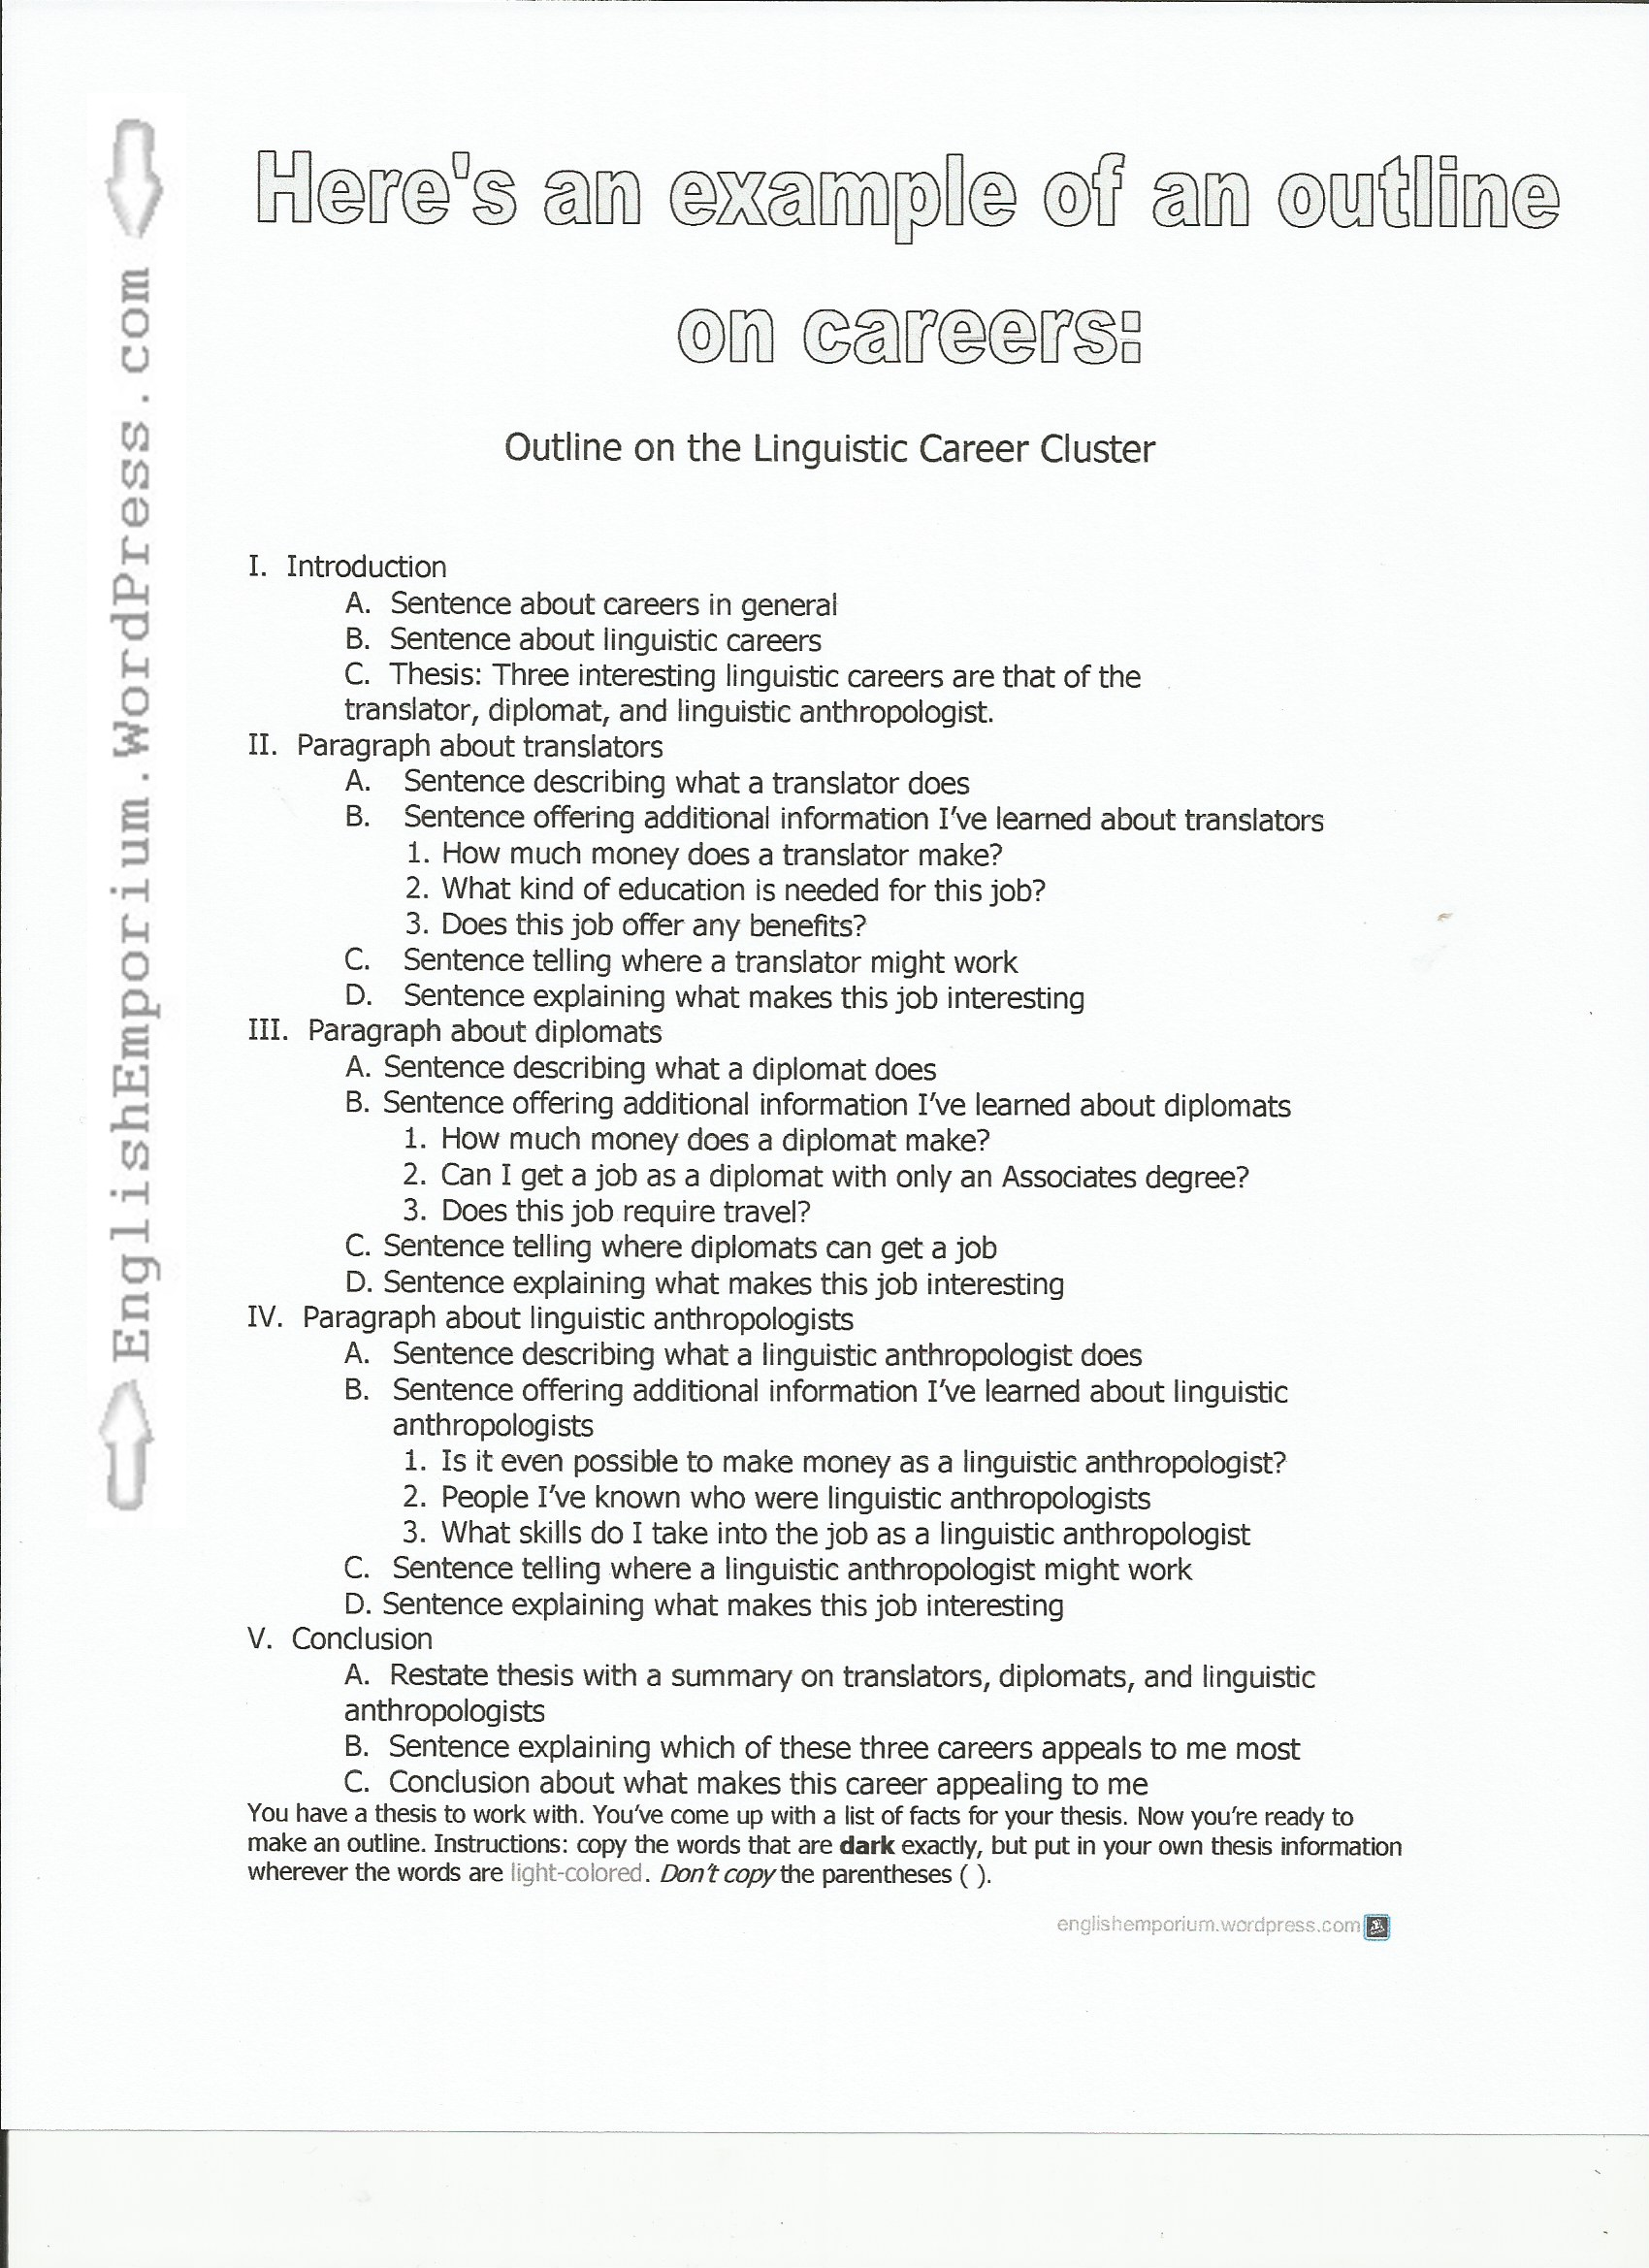 020 Research Paper Outline On Careers Pg Outlines For Top A Bullying Sample Apa Format Full